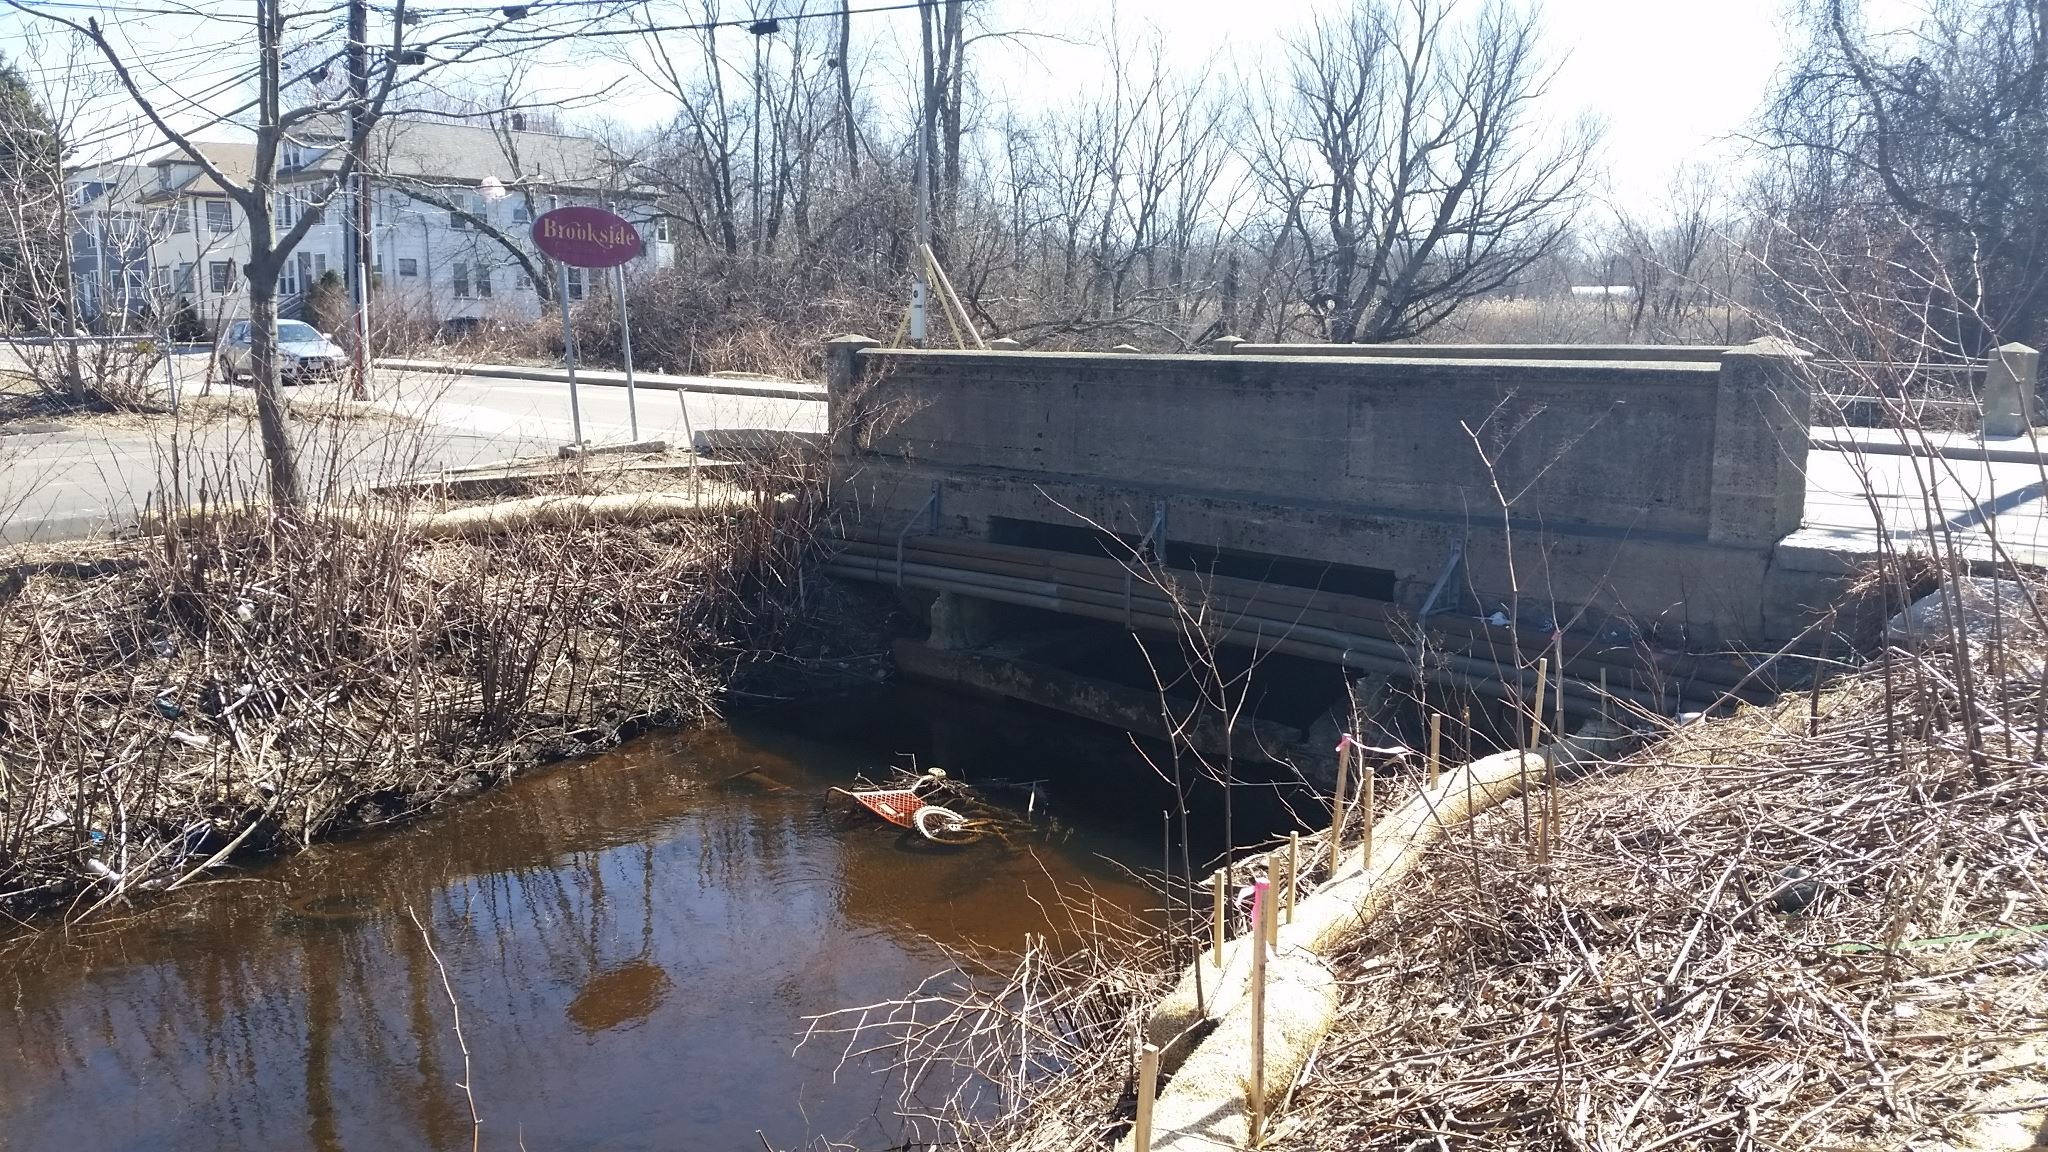 image showing the Beaver Street Bridge